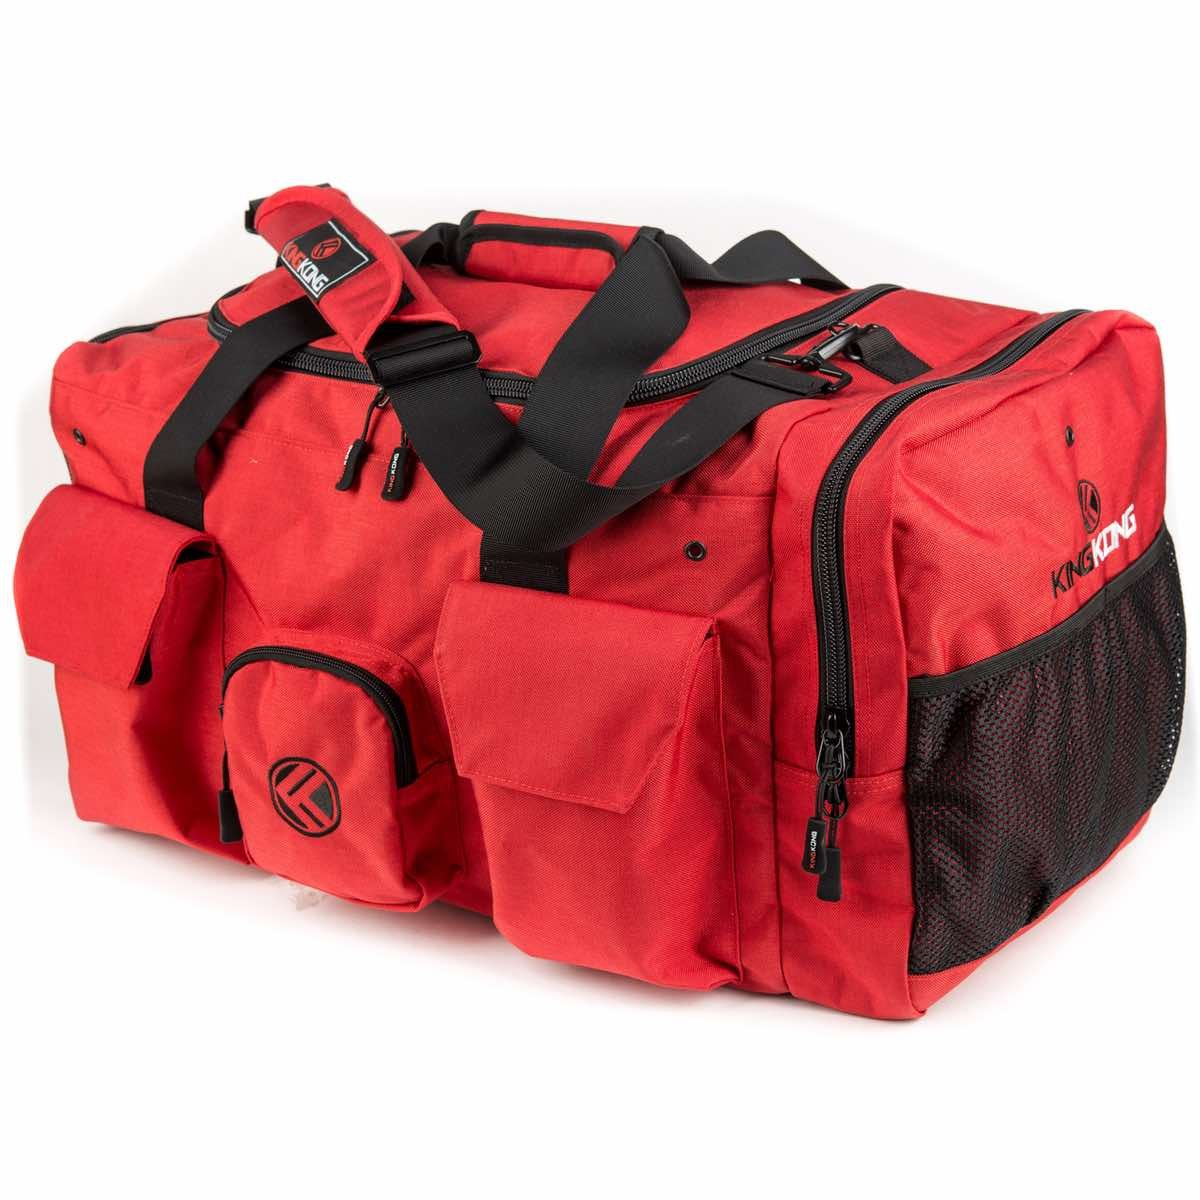 3966dca2d1 The Best Crossfit Gym Bag